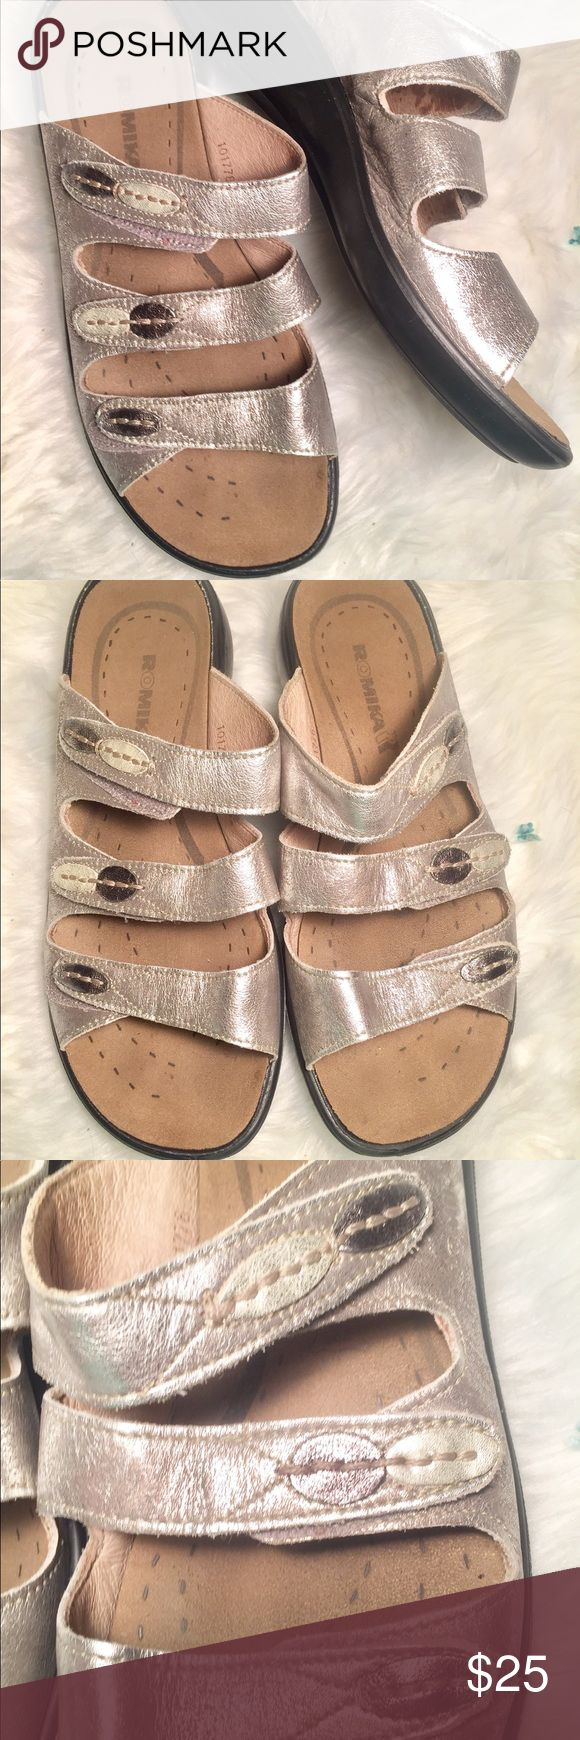 9 )39) ROMIKA Silver Leather Sandals In EUC! Very comfortable! All three straps are adjustable Velcro. Romika Shoes Sandals